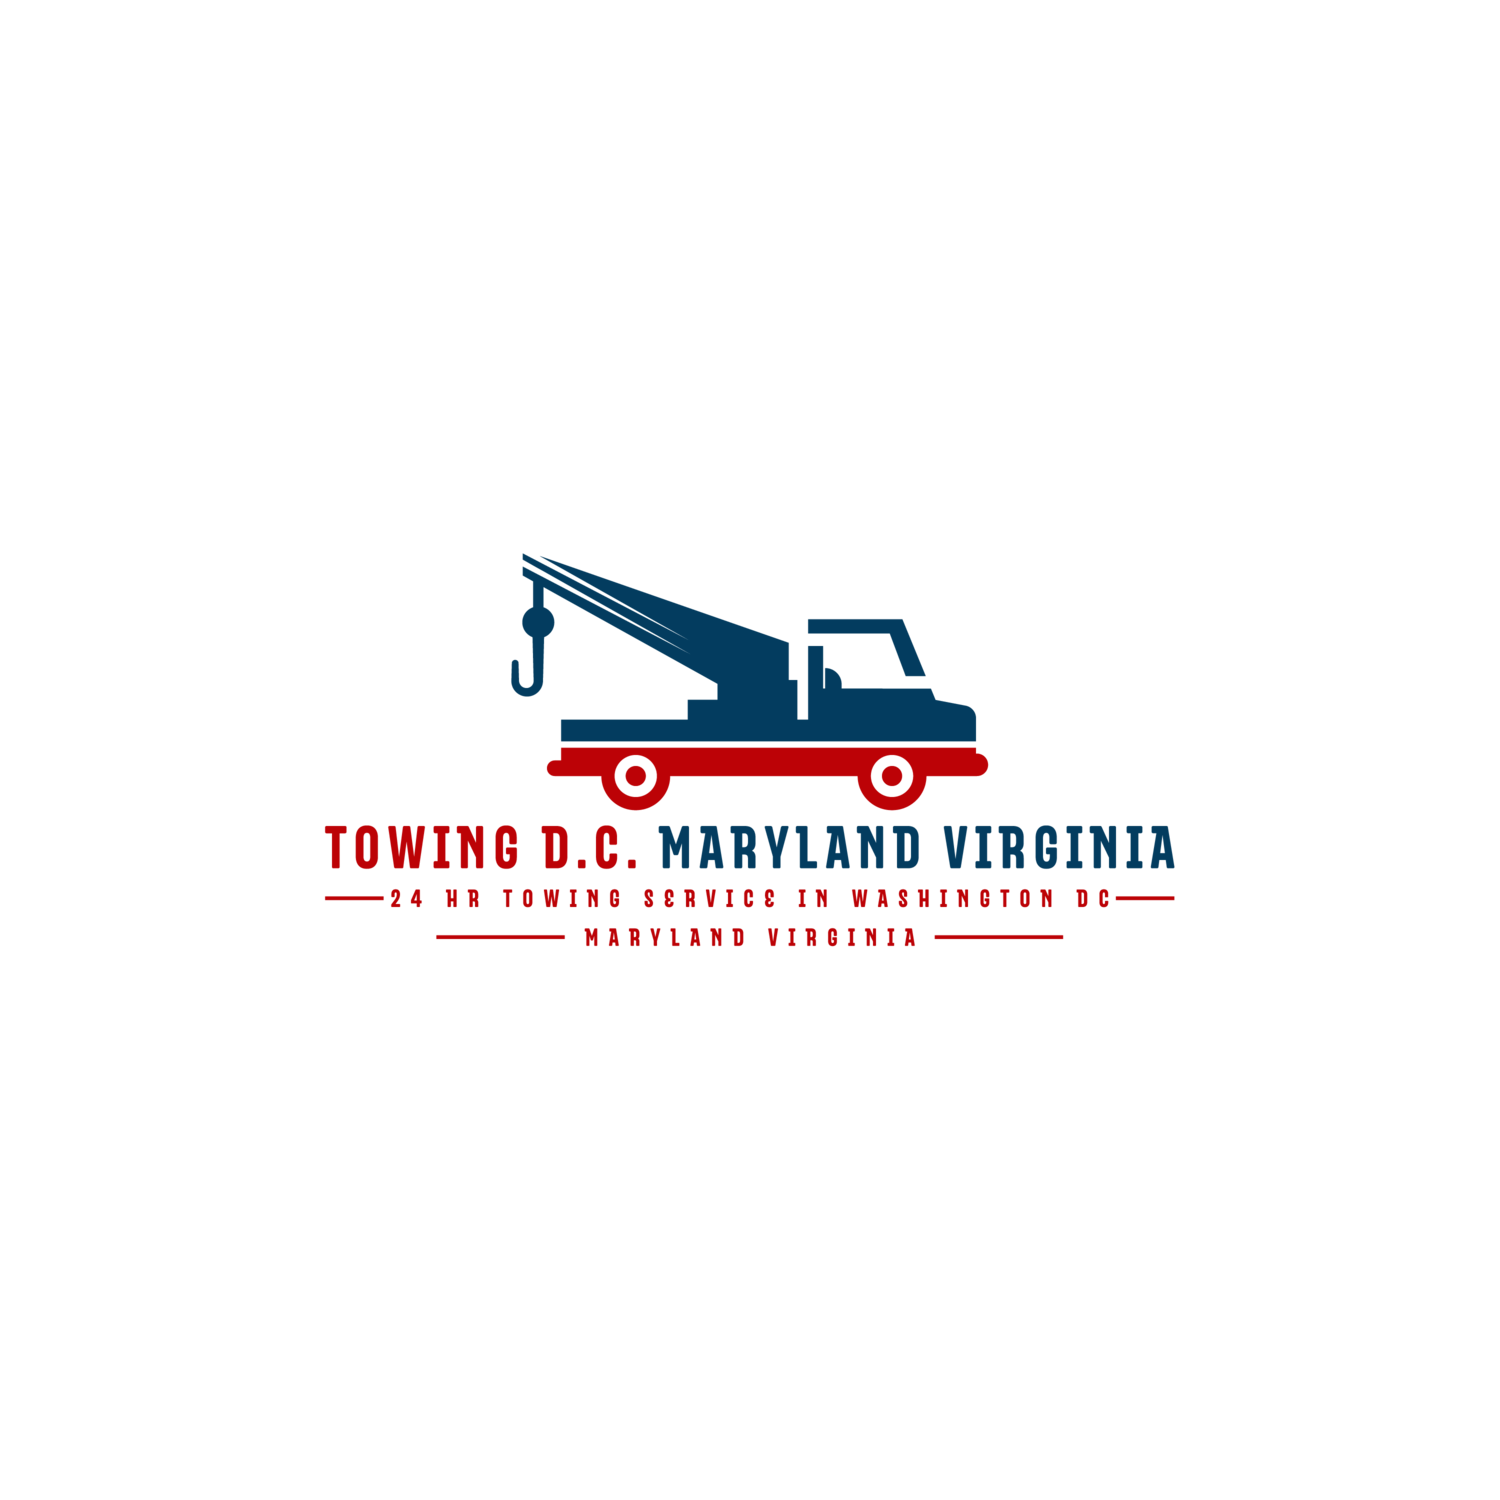 Towing Services Washington DC Maryland Virginia - Waterlogged Roads & The Increasing Need for Towing